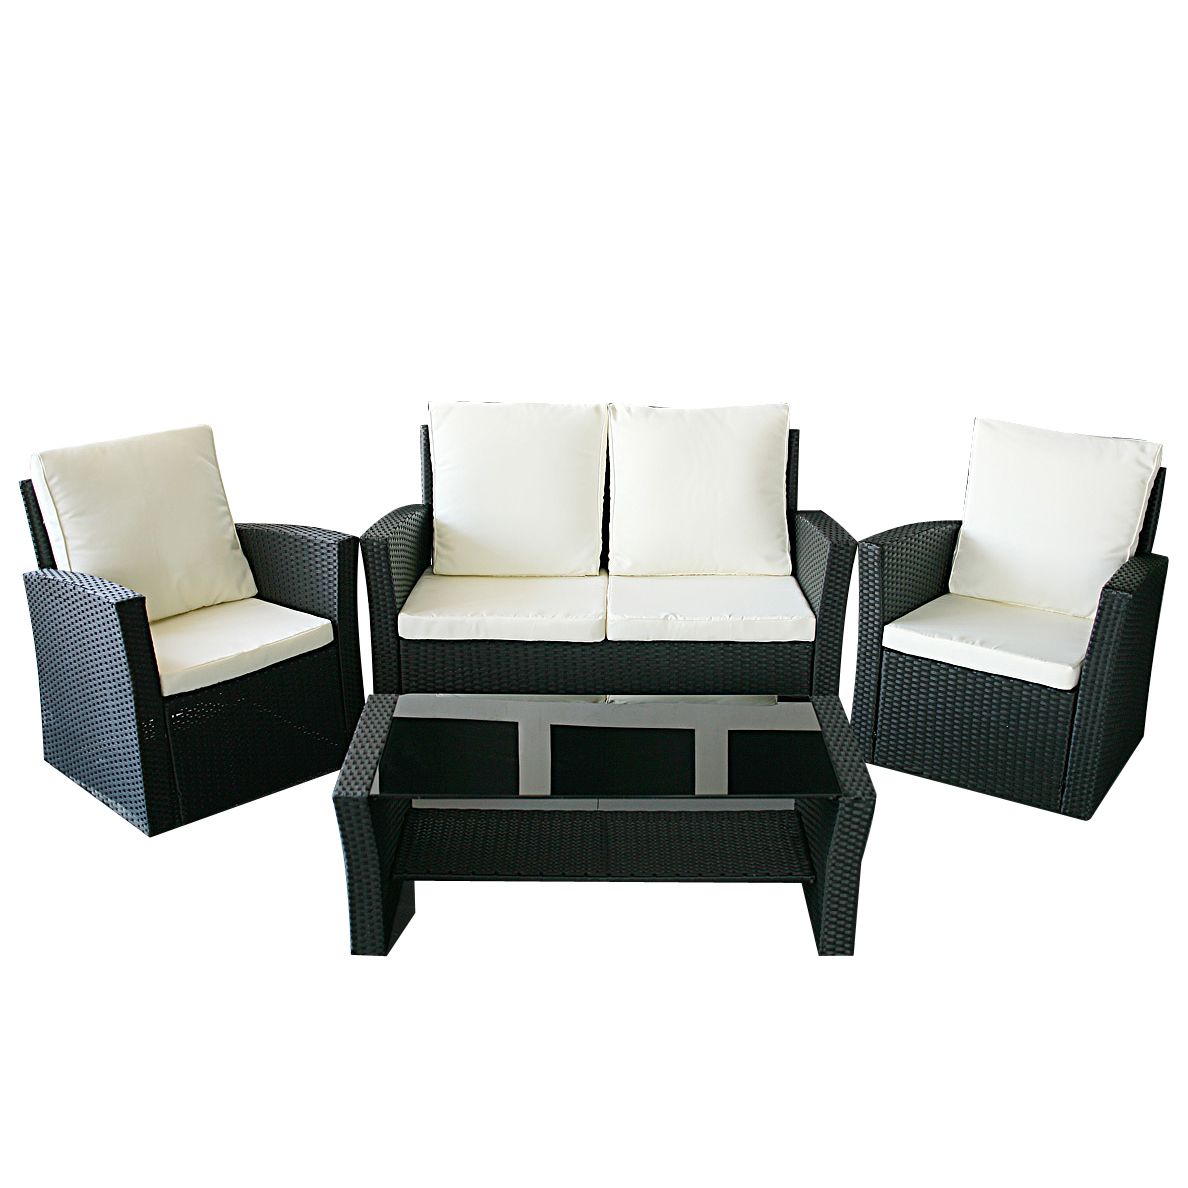 gartenm bel polyrattan sitzgruppe lounge in schwarz garten m bel le havre ebay. Black Bedroom Furniture Sets. Home Design Ideas